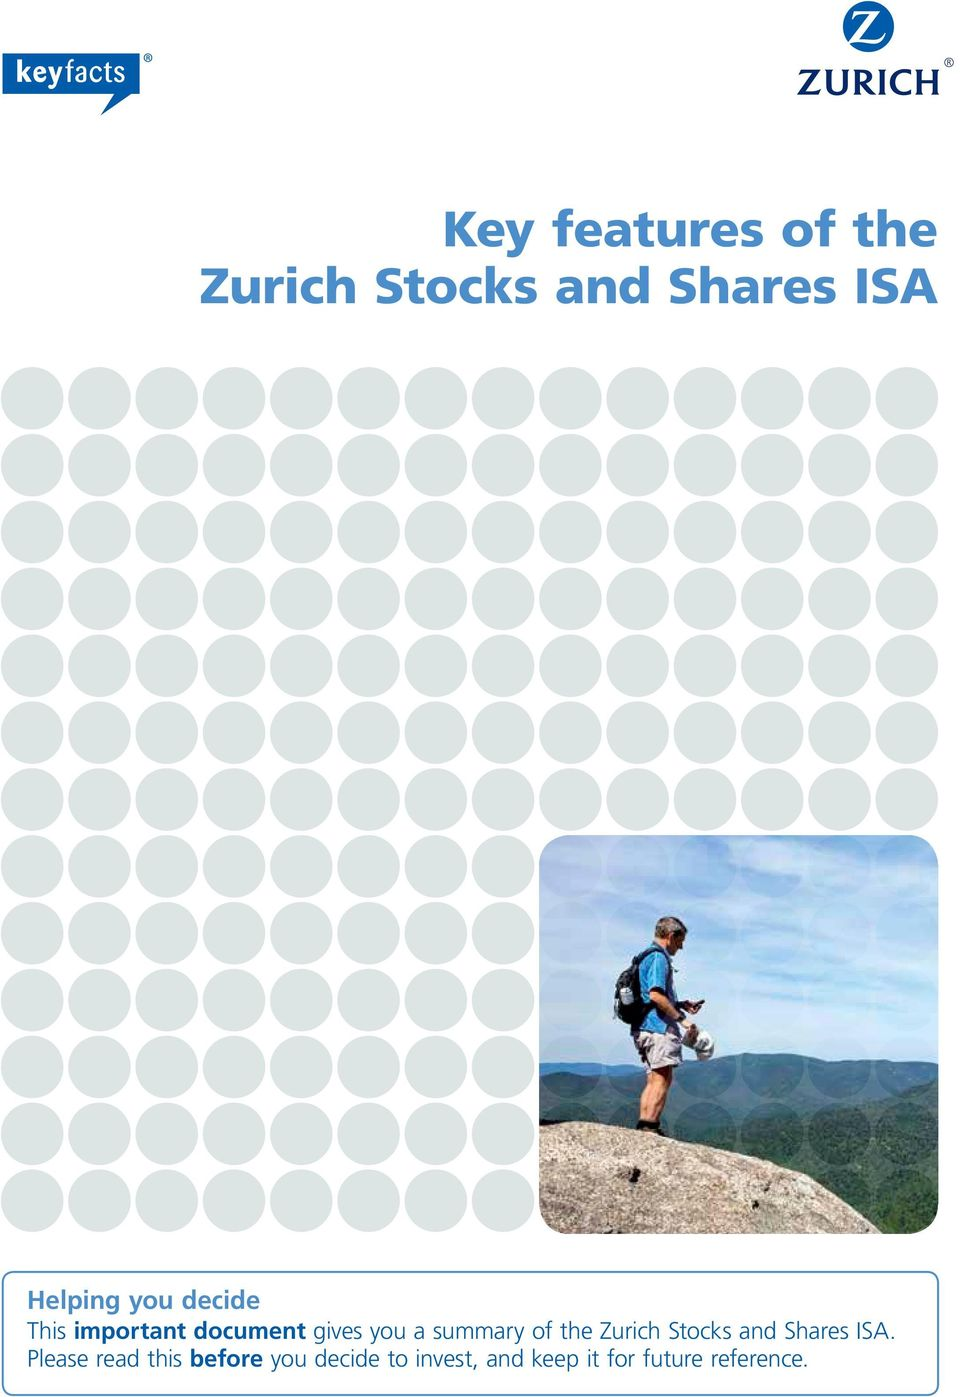 of the Zurich Stocks and Shares ISA.